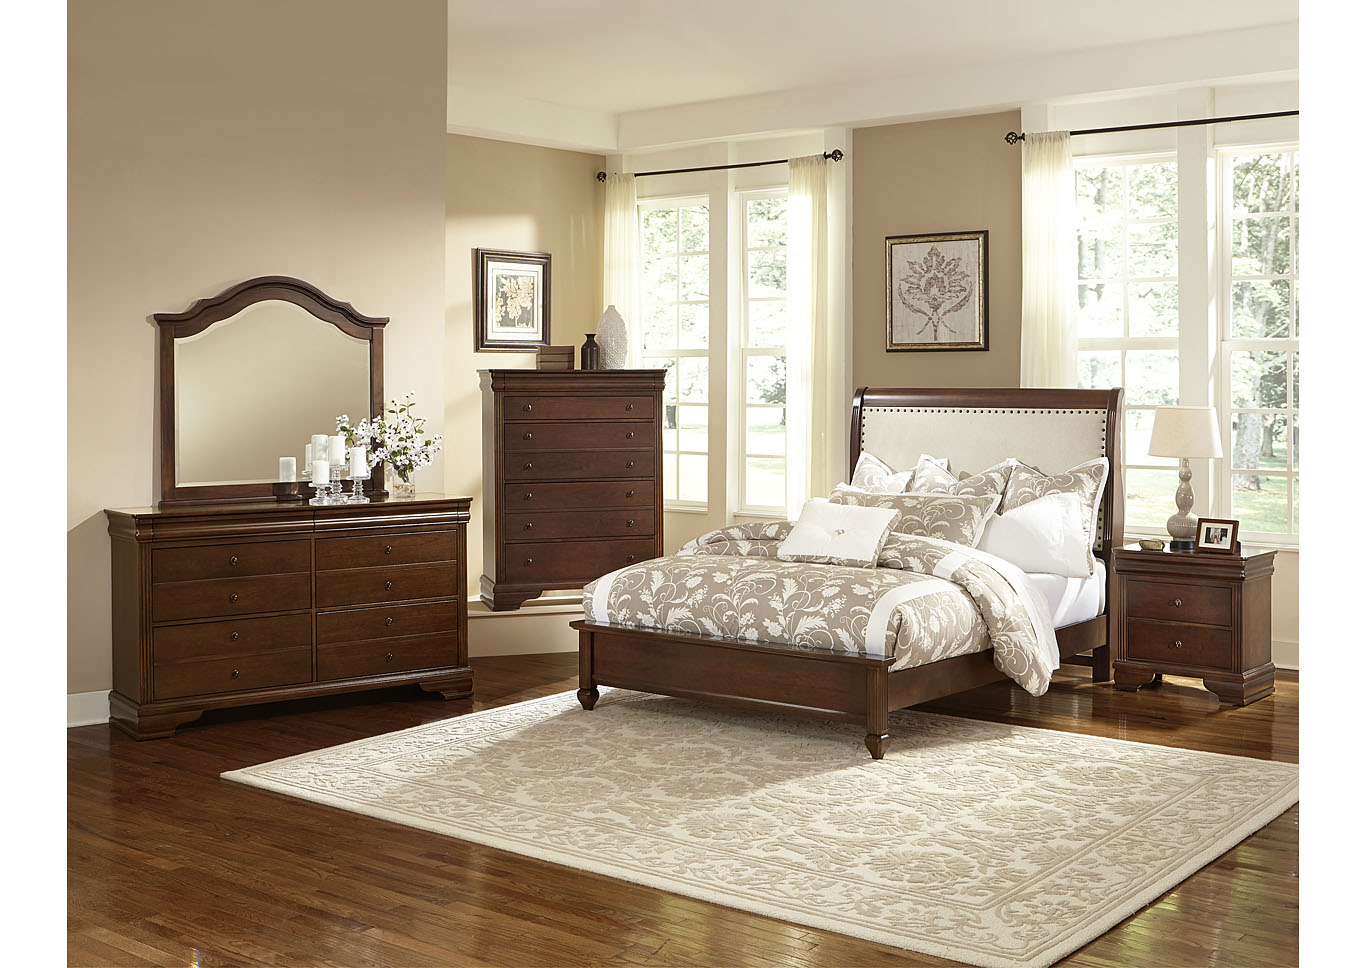 French Market French Cherry Queen Sleigh Bed w/ Dresser, Mirror and Drawer Chest,Vaughan-Bassett